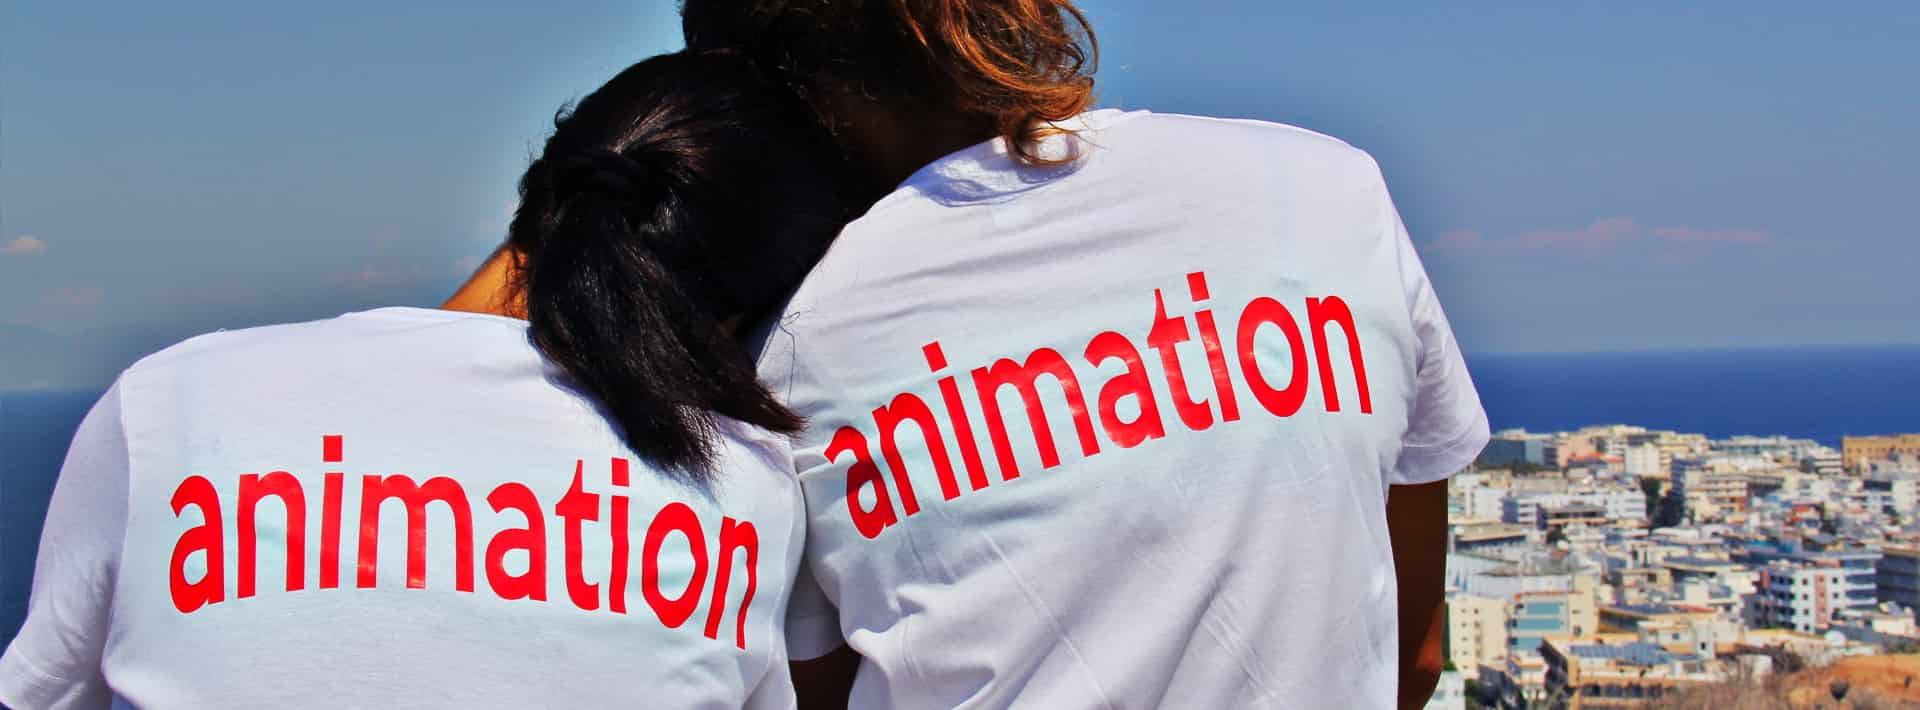 animation team